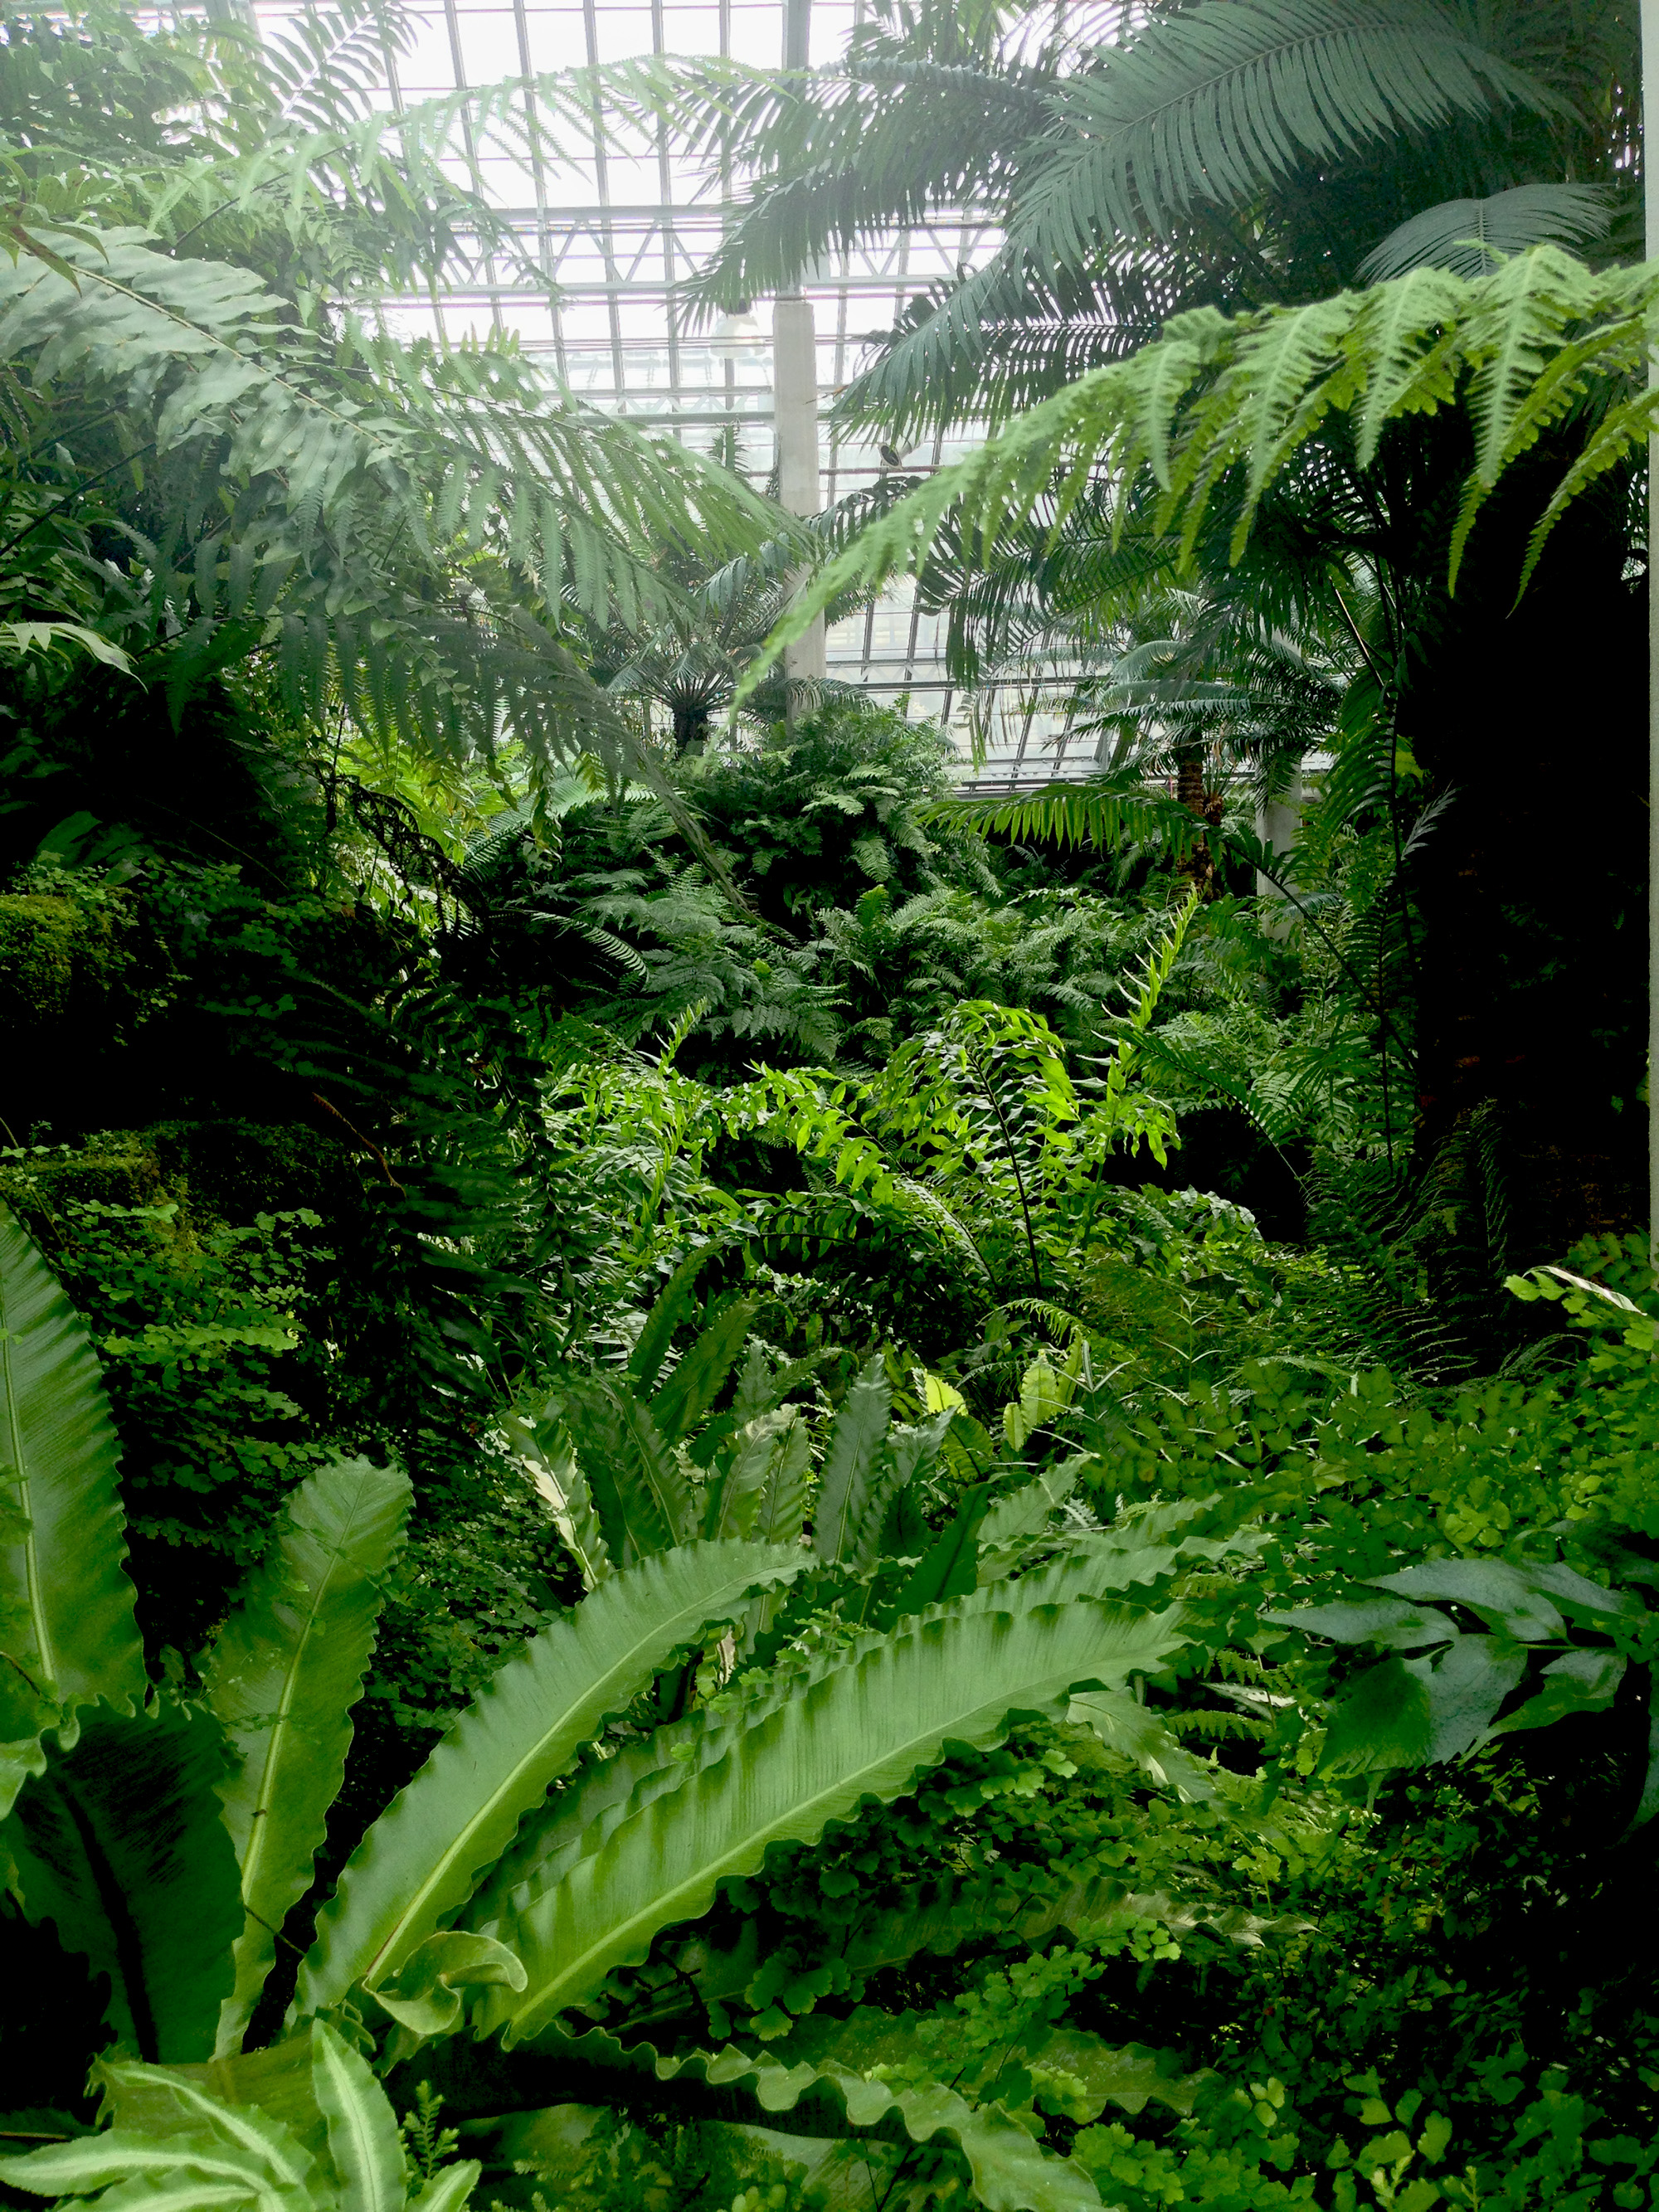 Ferm room, Garfield Park Conservatory, Chicago Illinois